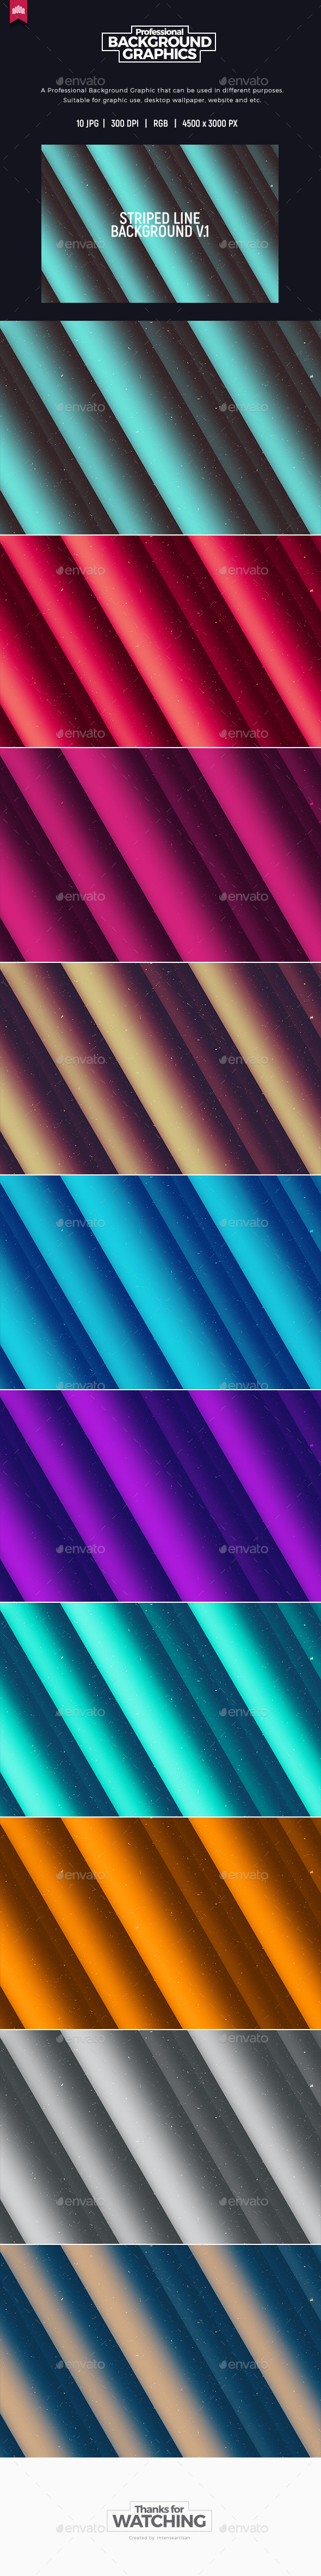 Striped Line Background V.1 - Abstract Backgrounds